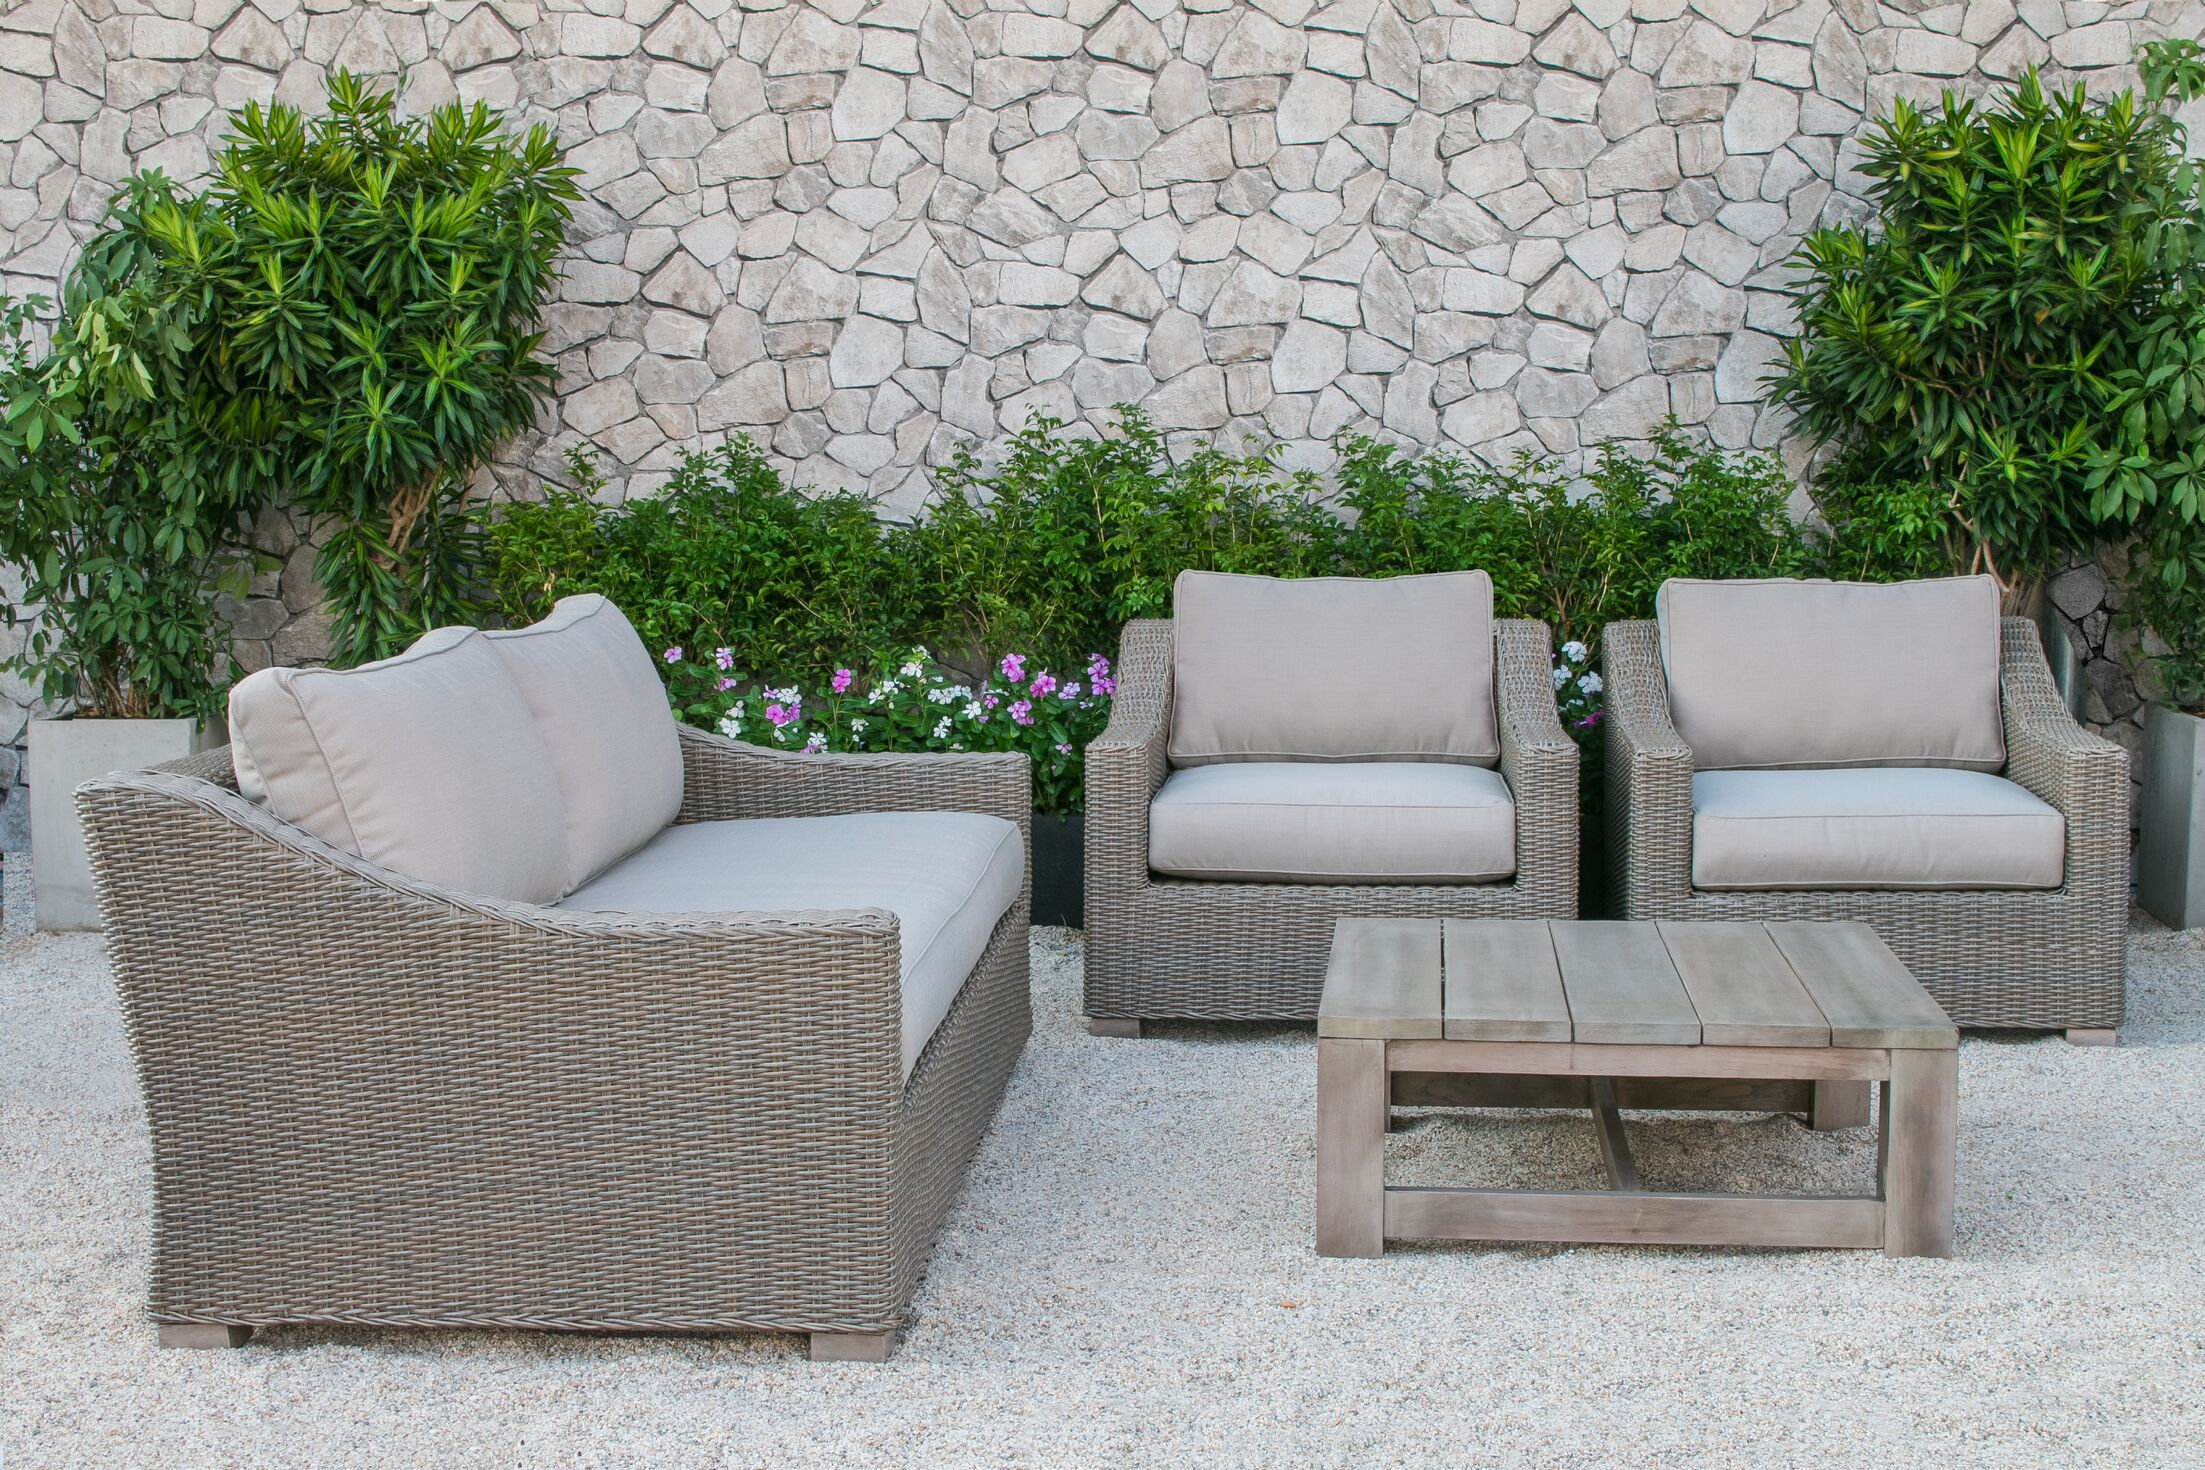 Naperville 4 Piece Sofa Set with Cushions